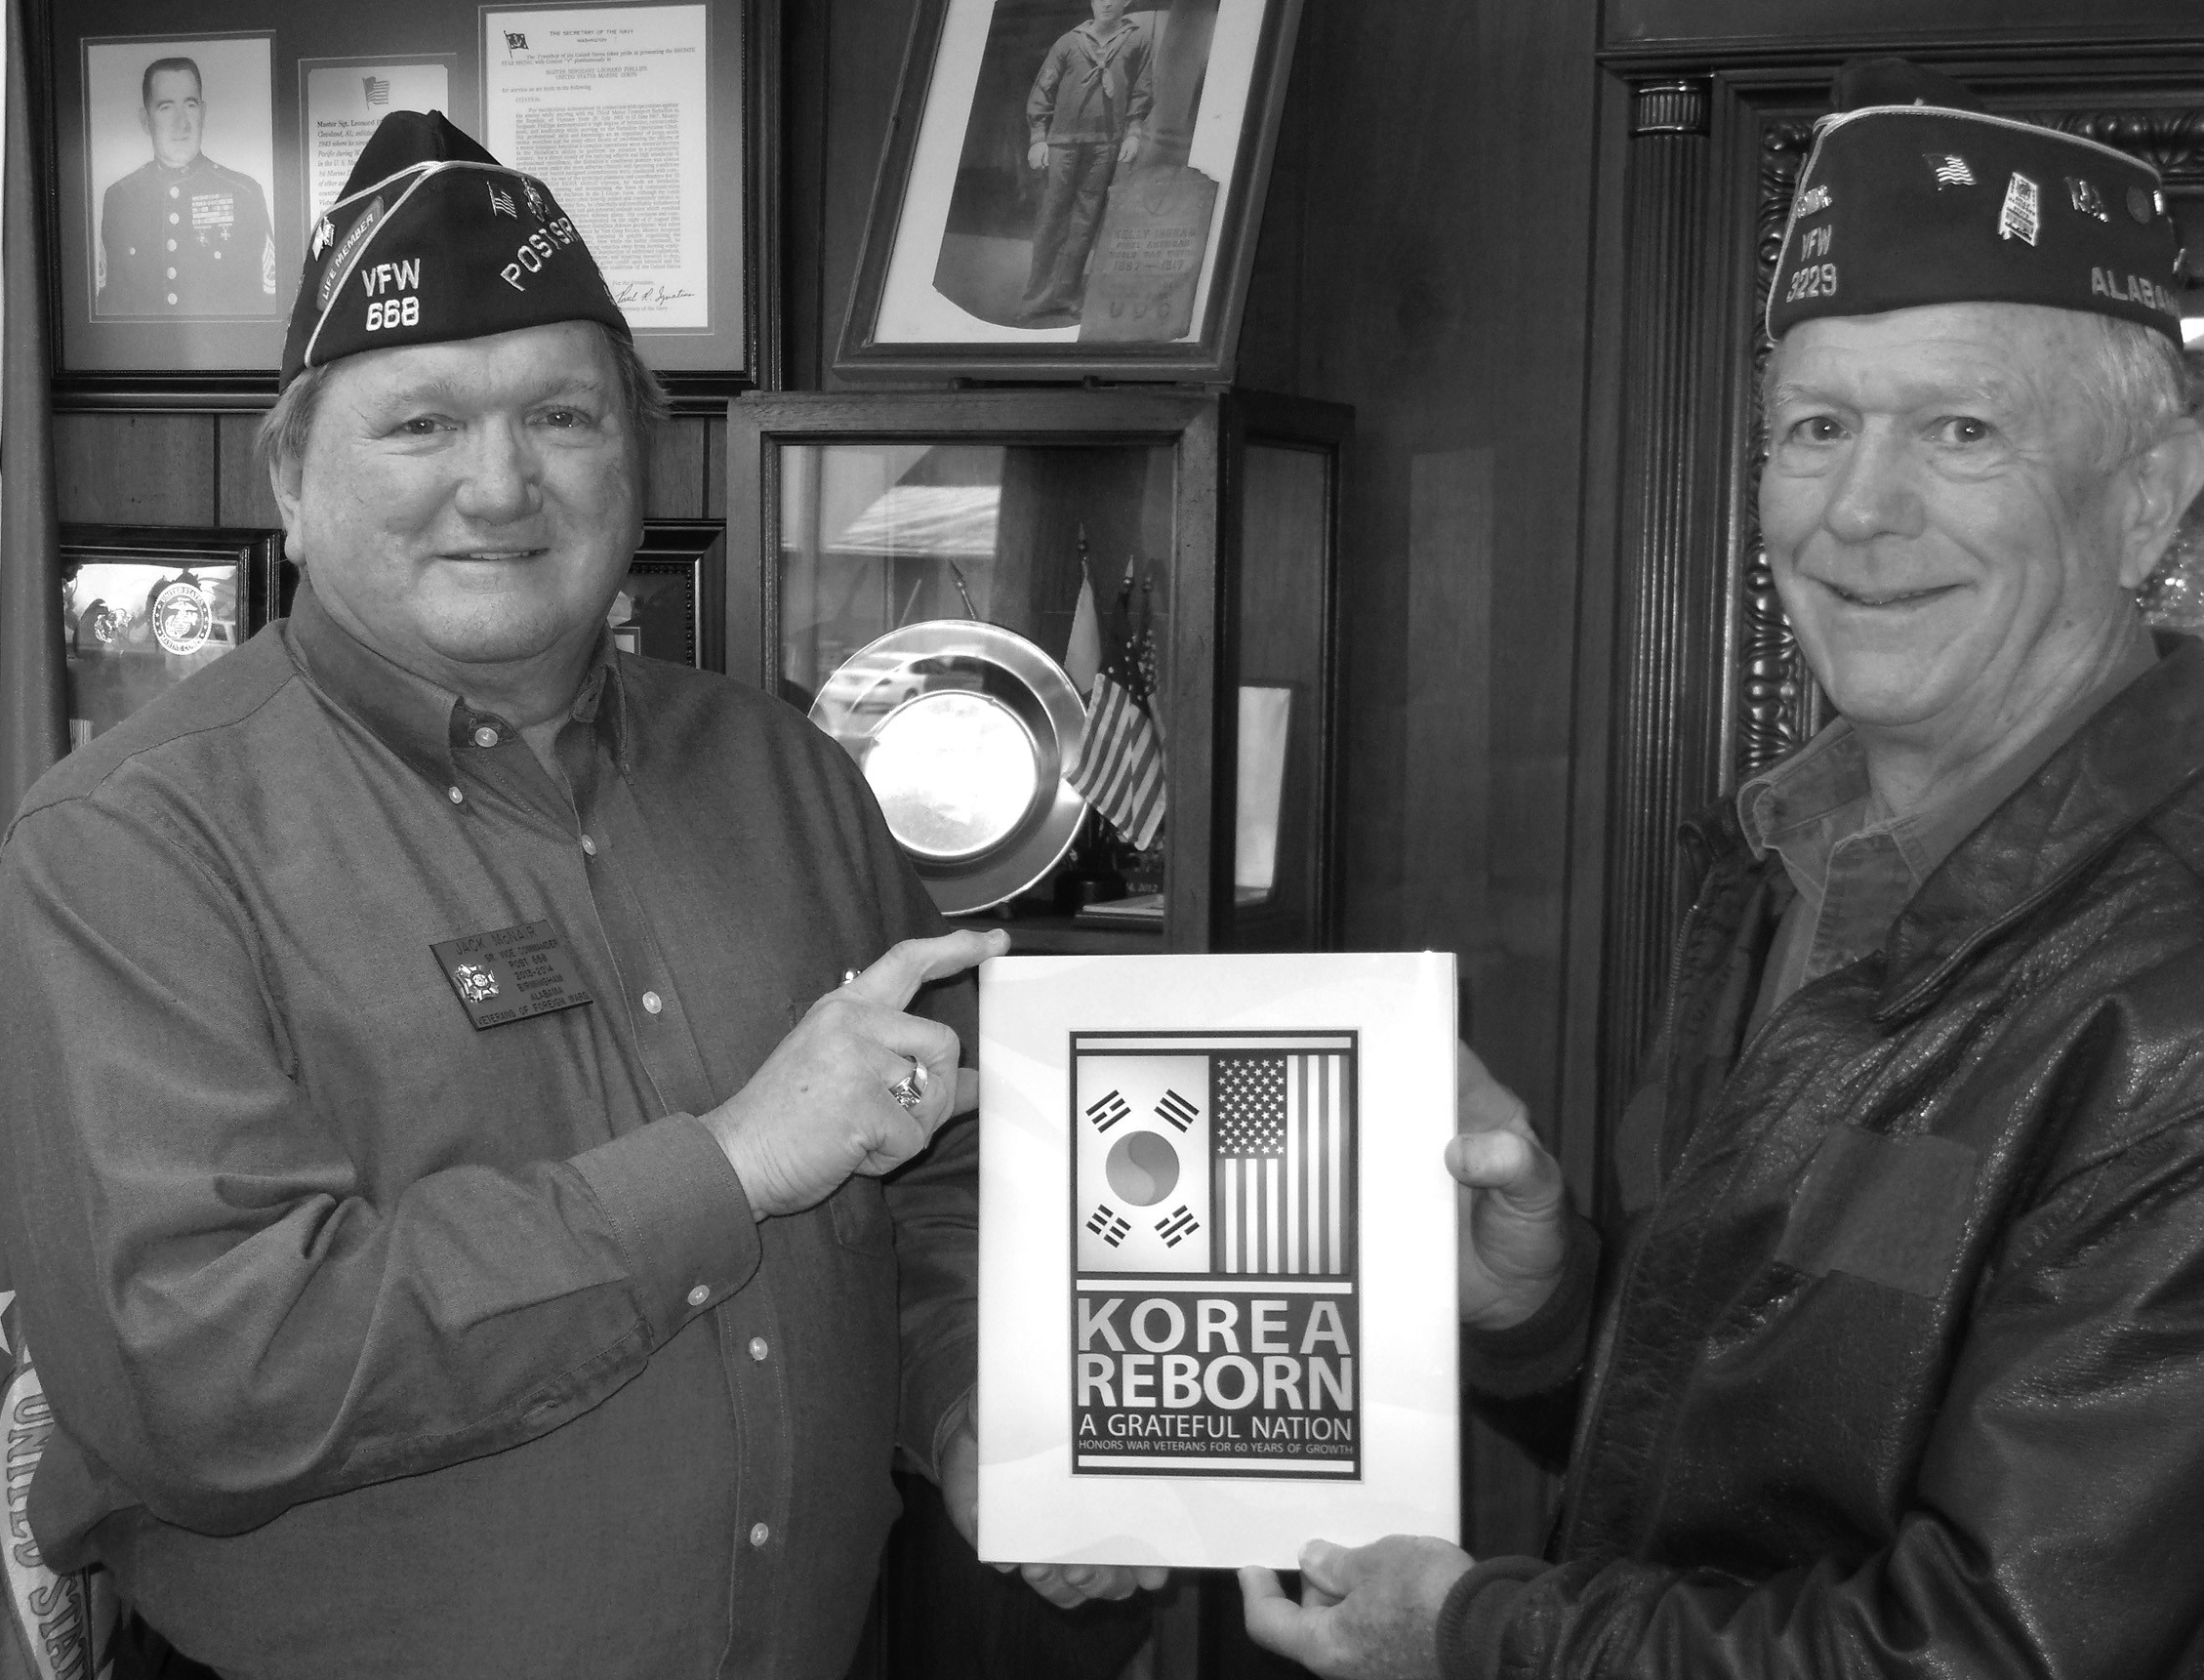 Jack McNair, (left) senior vice commander of Kelly Ingram Post 668, and Frank Waid, commander of Springville VFW 3229, delivered books chronologically recapping the Korean War to the Blount County Museum earlier this month. Books are available at the Blount County Memorial Museum free to veterans. 'Korea Reborn: A Grateful Nation Honors War Veterans for 60 years of Growth,' was made by the South Korean government as a gift for veterans, and anyone interested in obtaining one can contact Amy Rhudy, Blount County Memorial Museum curator. The books will be available for pick up on March 28 from 10 a.m. until 2 p.m. Local VFWs will also be able to receive the books, according to McNair. 'Many Alabama veterans have looked through the pictures in this book and found pictures of themselves or pictures of places they knew,' McNair said. For more information, call Rhudy at 625-6905. – Nicole Singleton